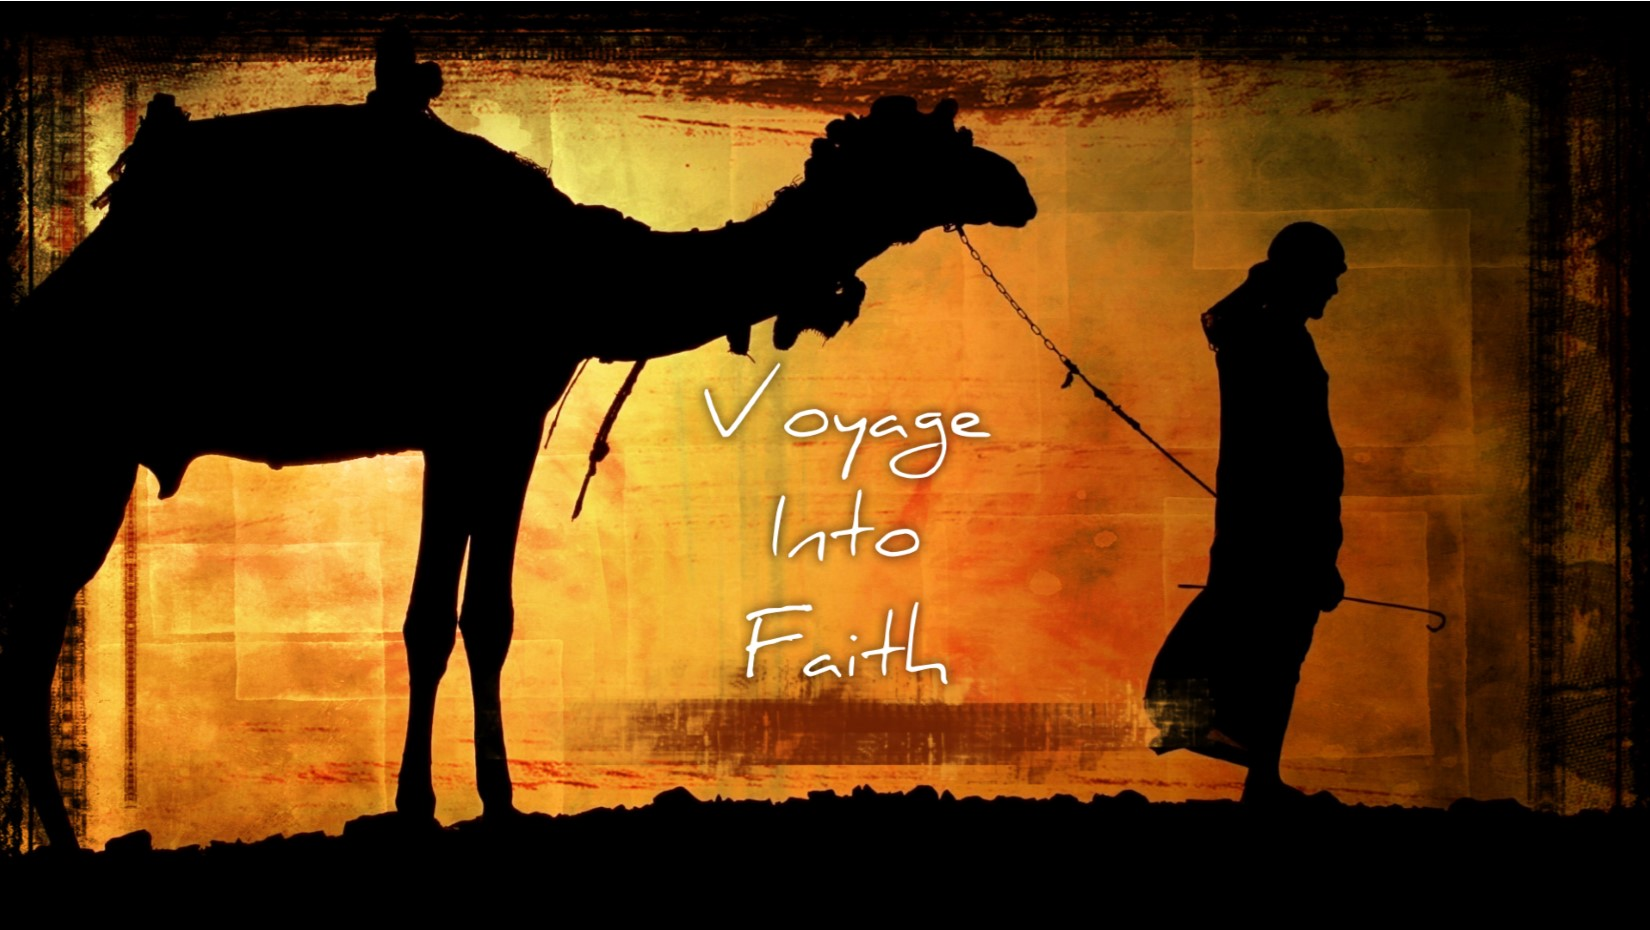 07.26.2020 Voyage Into Faith: Rahab